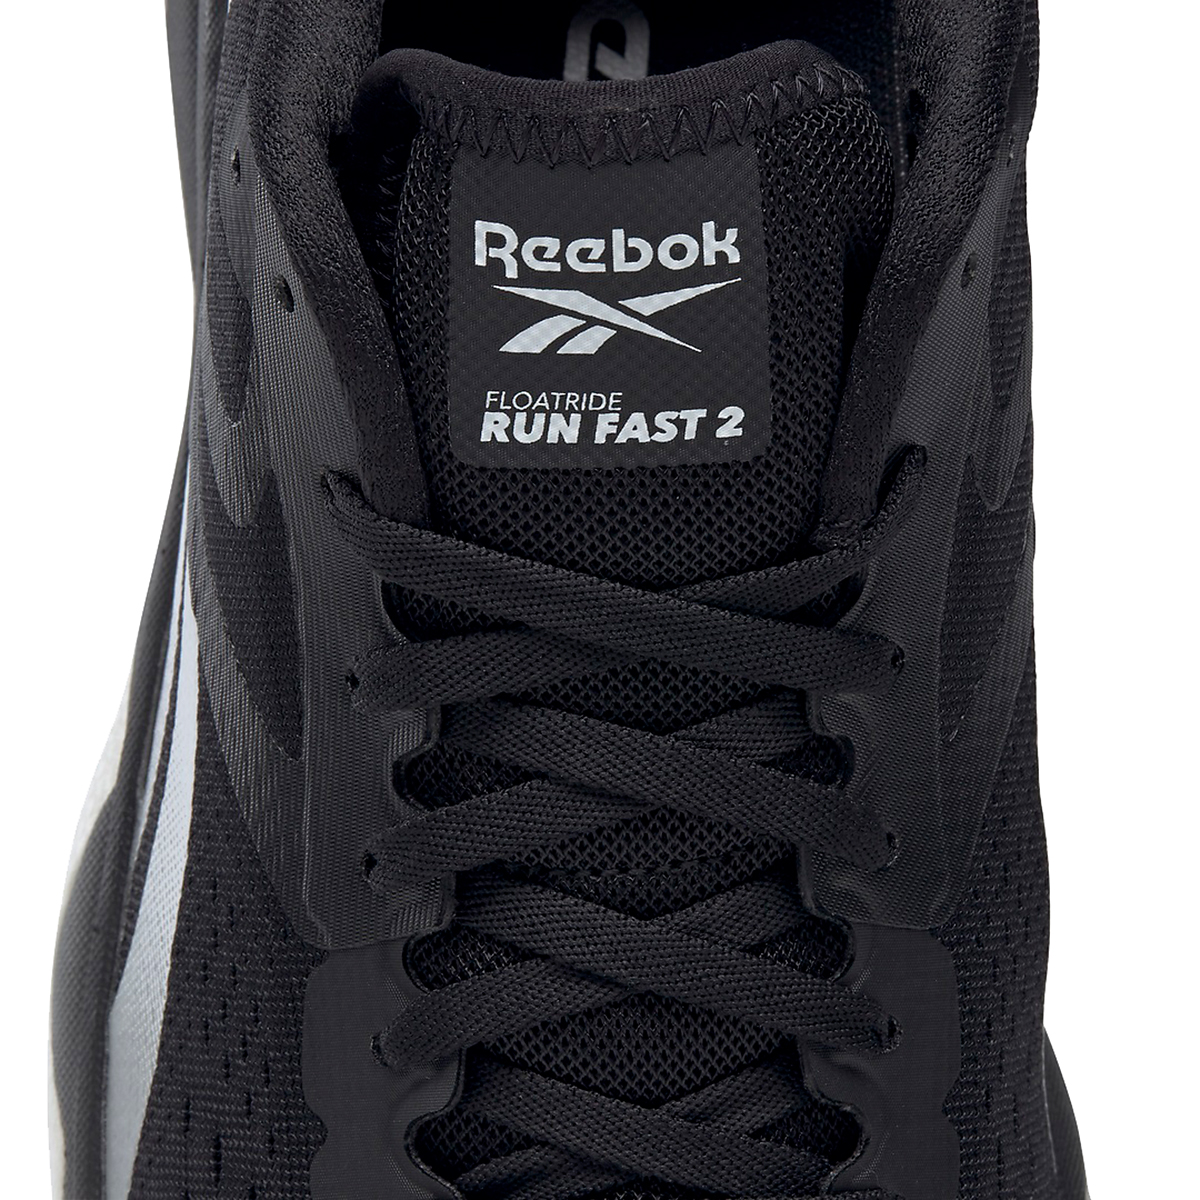 Men's Reebok Floatride Run Fast 2.0 Running Shoe - Color: Black/Pure Grey - Size: 7 - Width: Regular, Black/Pure Grey, large, image 4